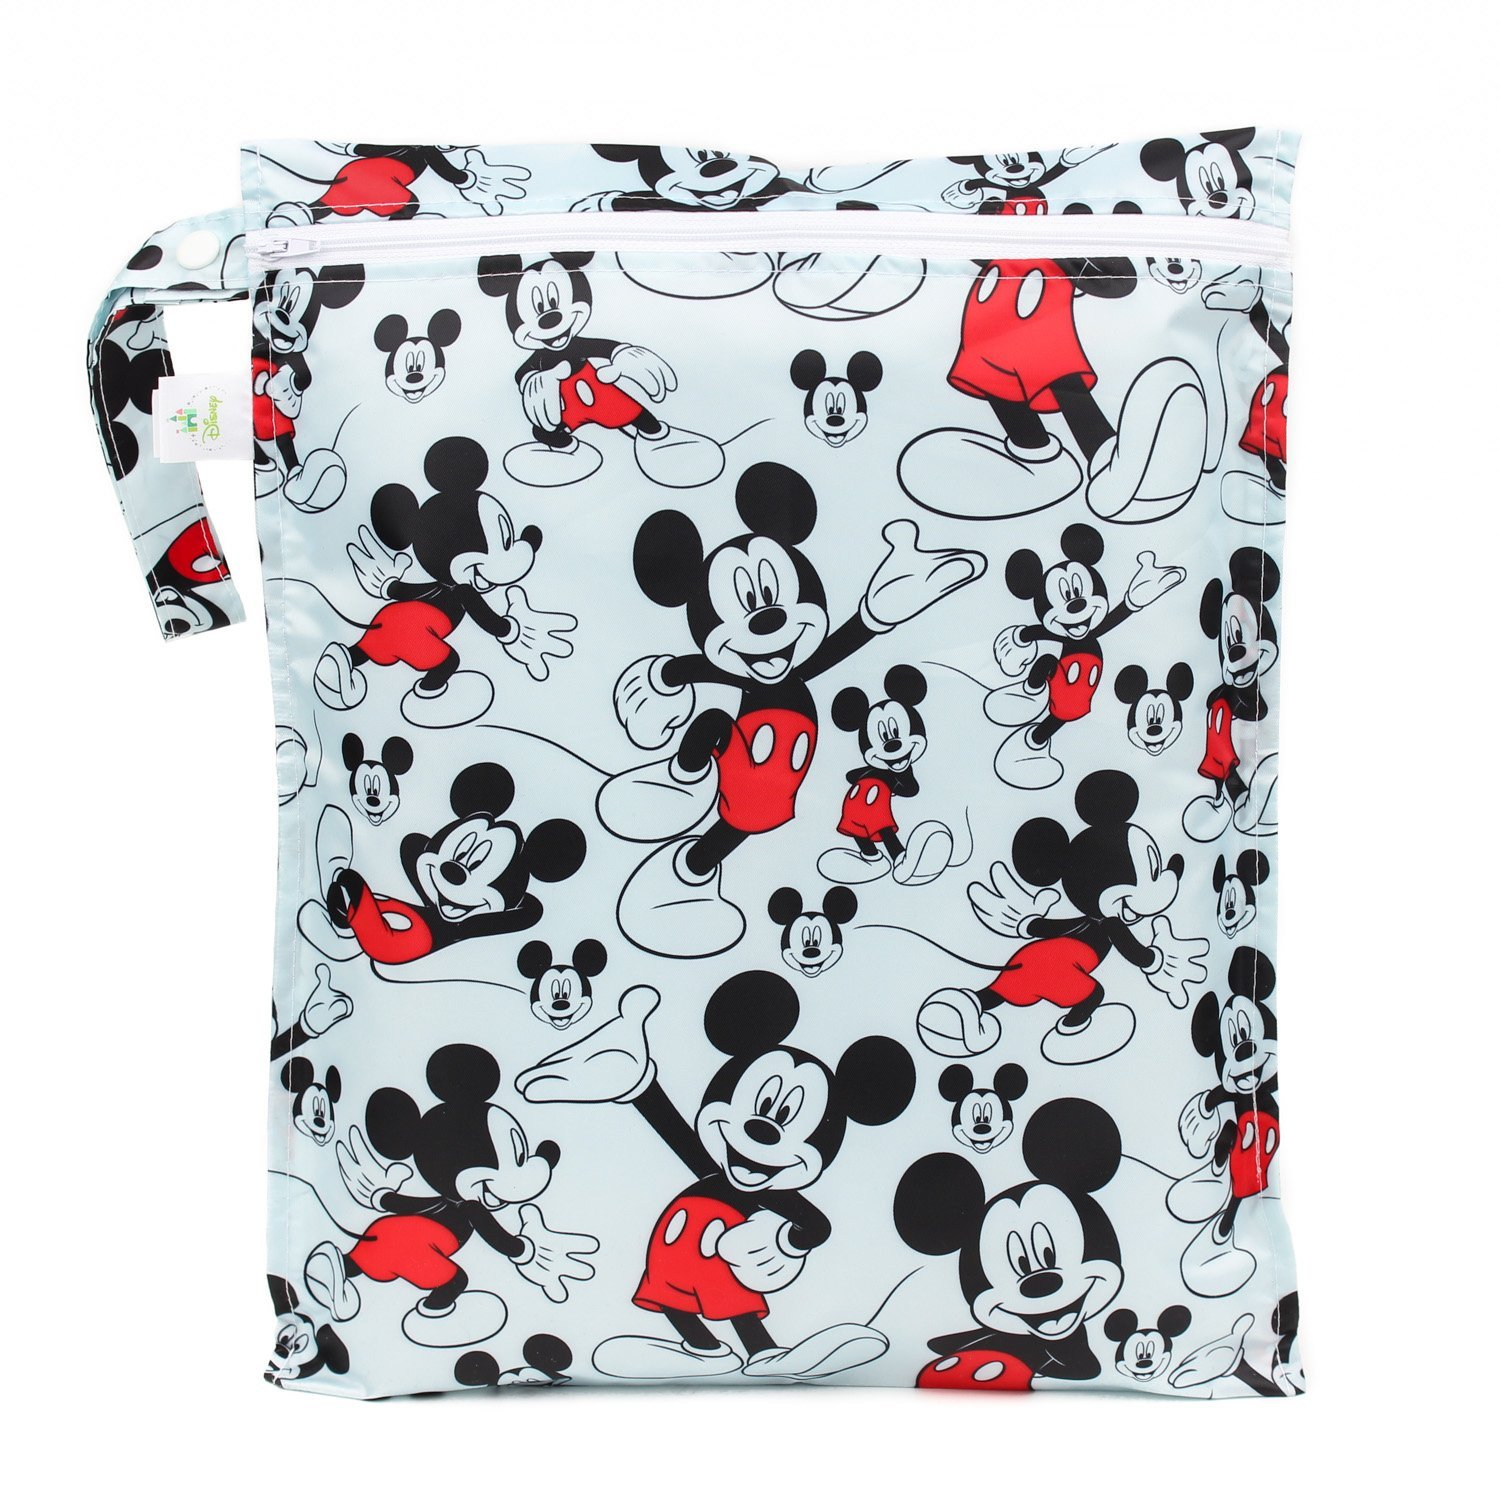 Stroller Bumkins Disney Minnie Mouse Waterproof Wet Bag 12x14 Reusable for Travel Pool Beach Diapers Toiletries Electronics Dirty Gym Clothes Wet Swimsuits Washable Toys